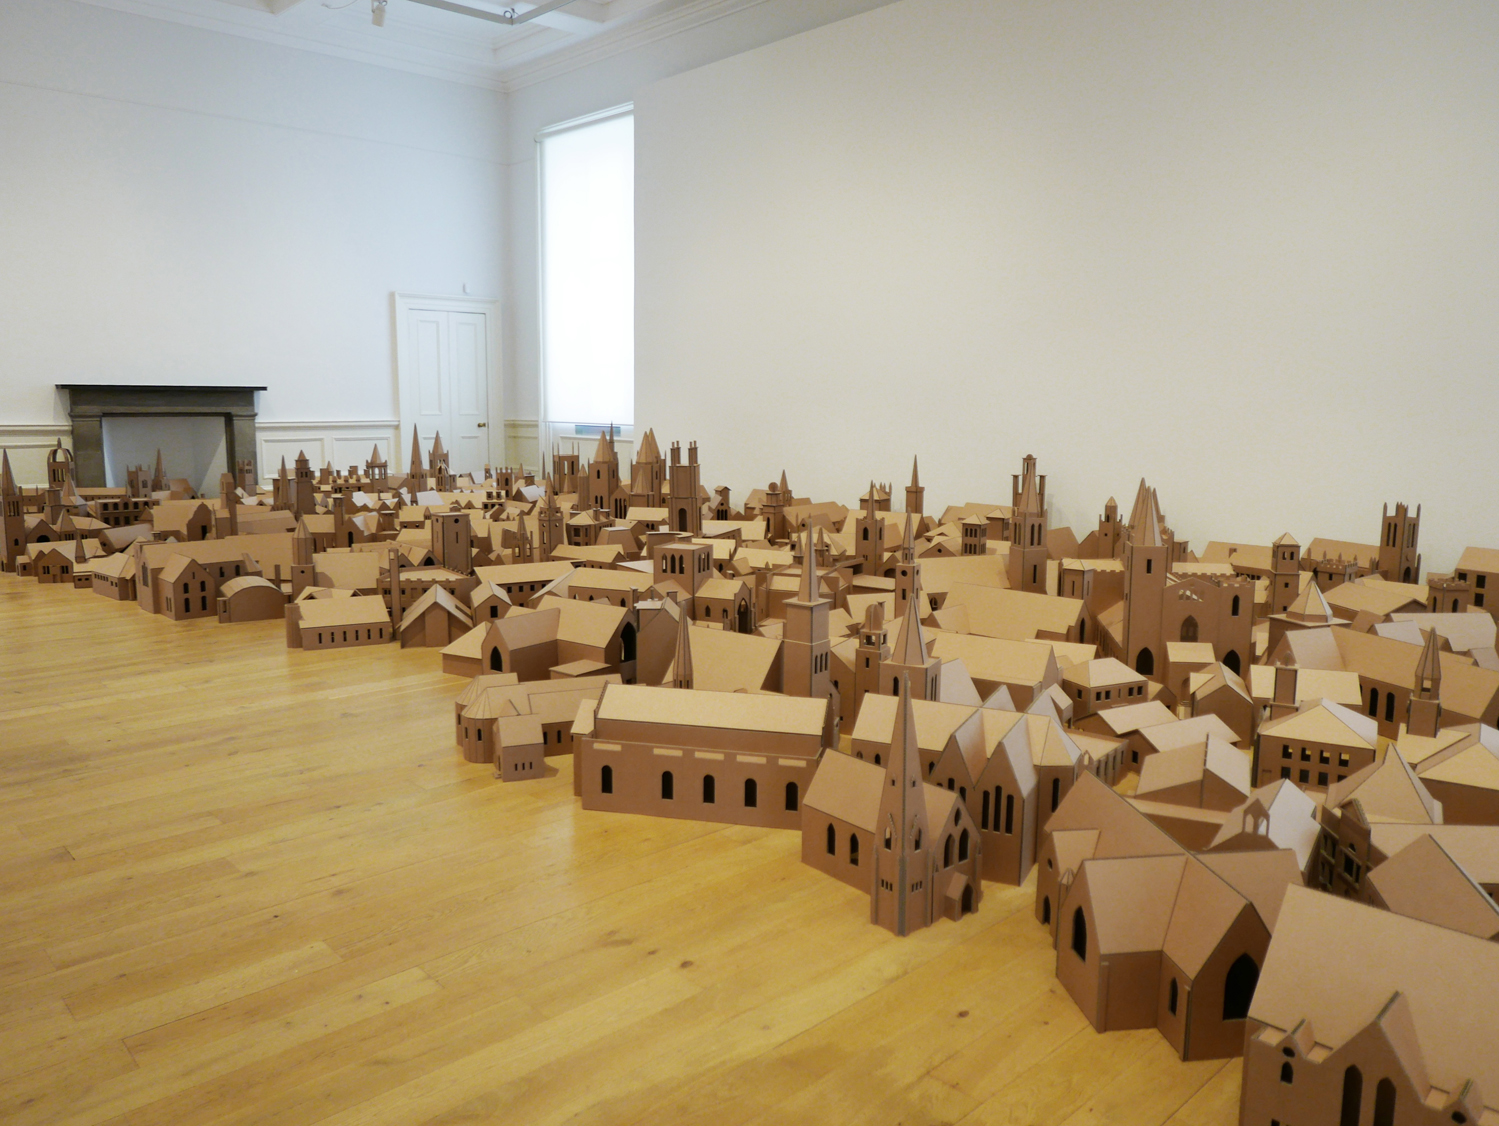 """The Lamp of Sacrifice, 286 Places of Worship, Edinburgh 2004"" By Nathan Coley"